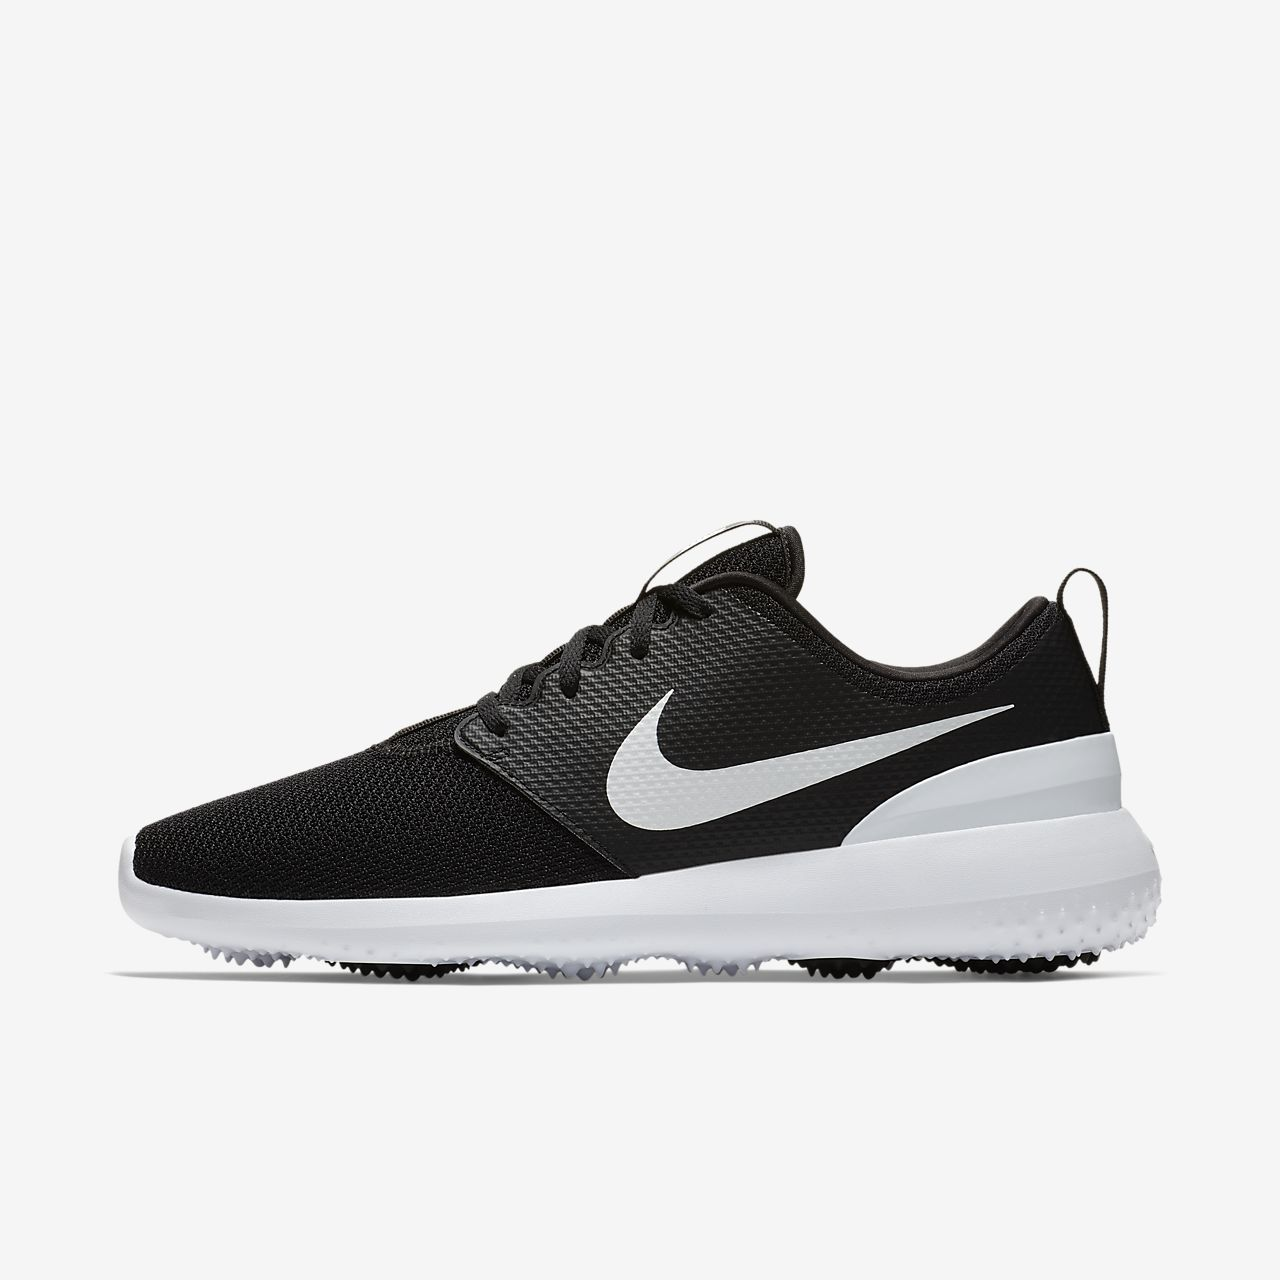 premium selection 76e19 ca903 Nike Roshe G Men's Golf Shoe